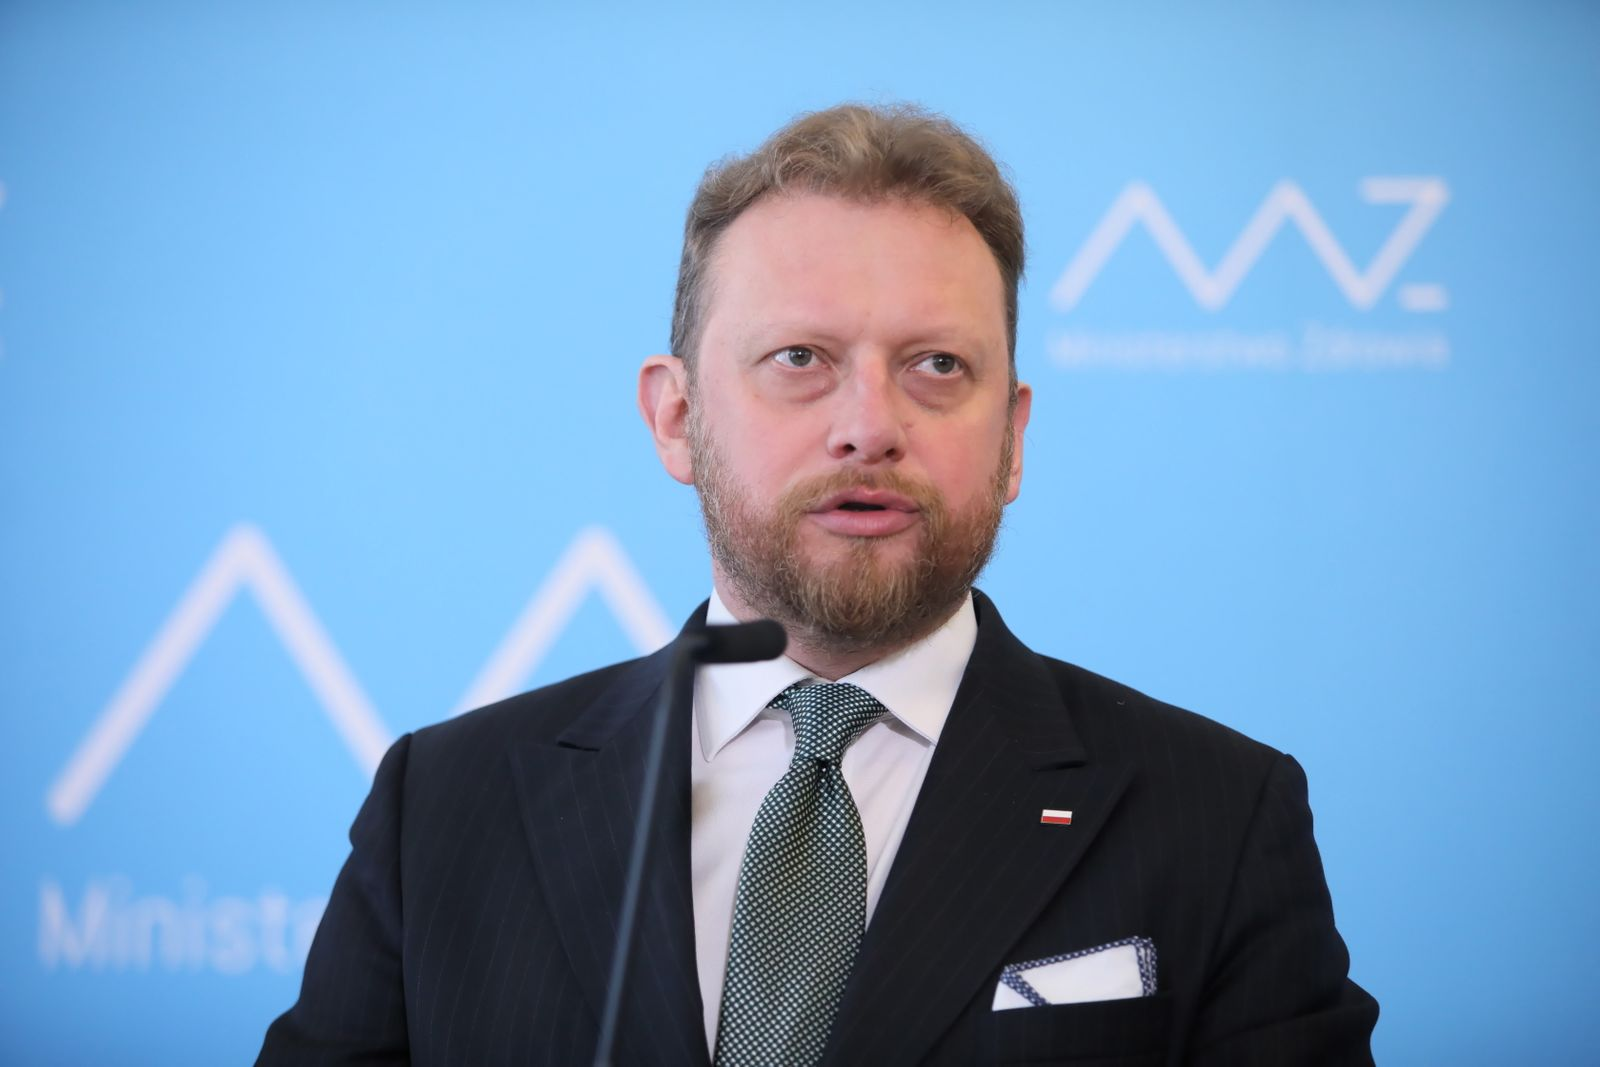 Polish Health Minister Lukasz Szumowski press conference, Warsaw, Poland - 16 Mar 2020